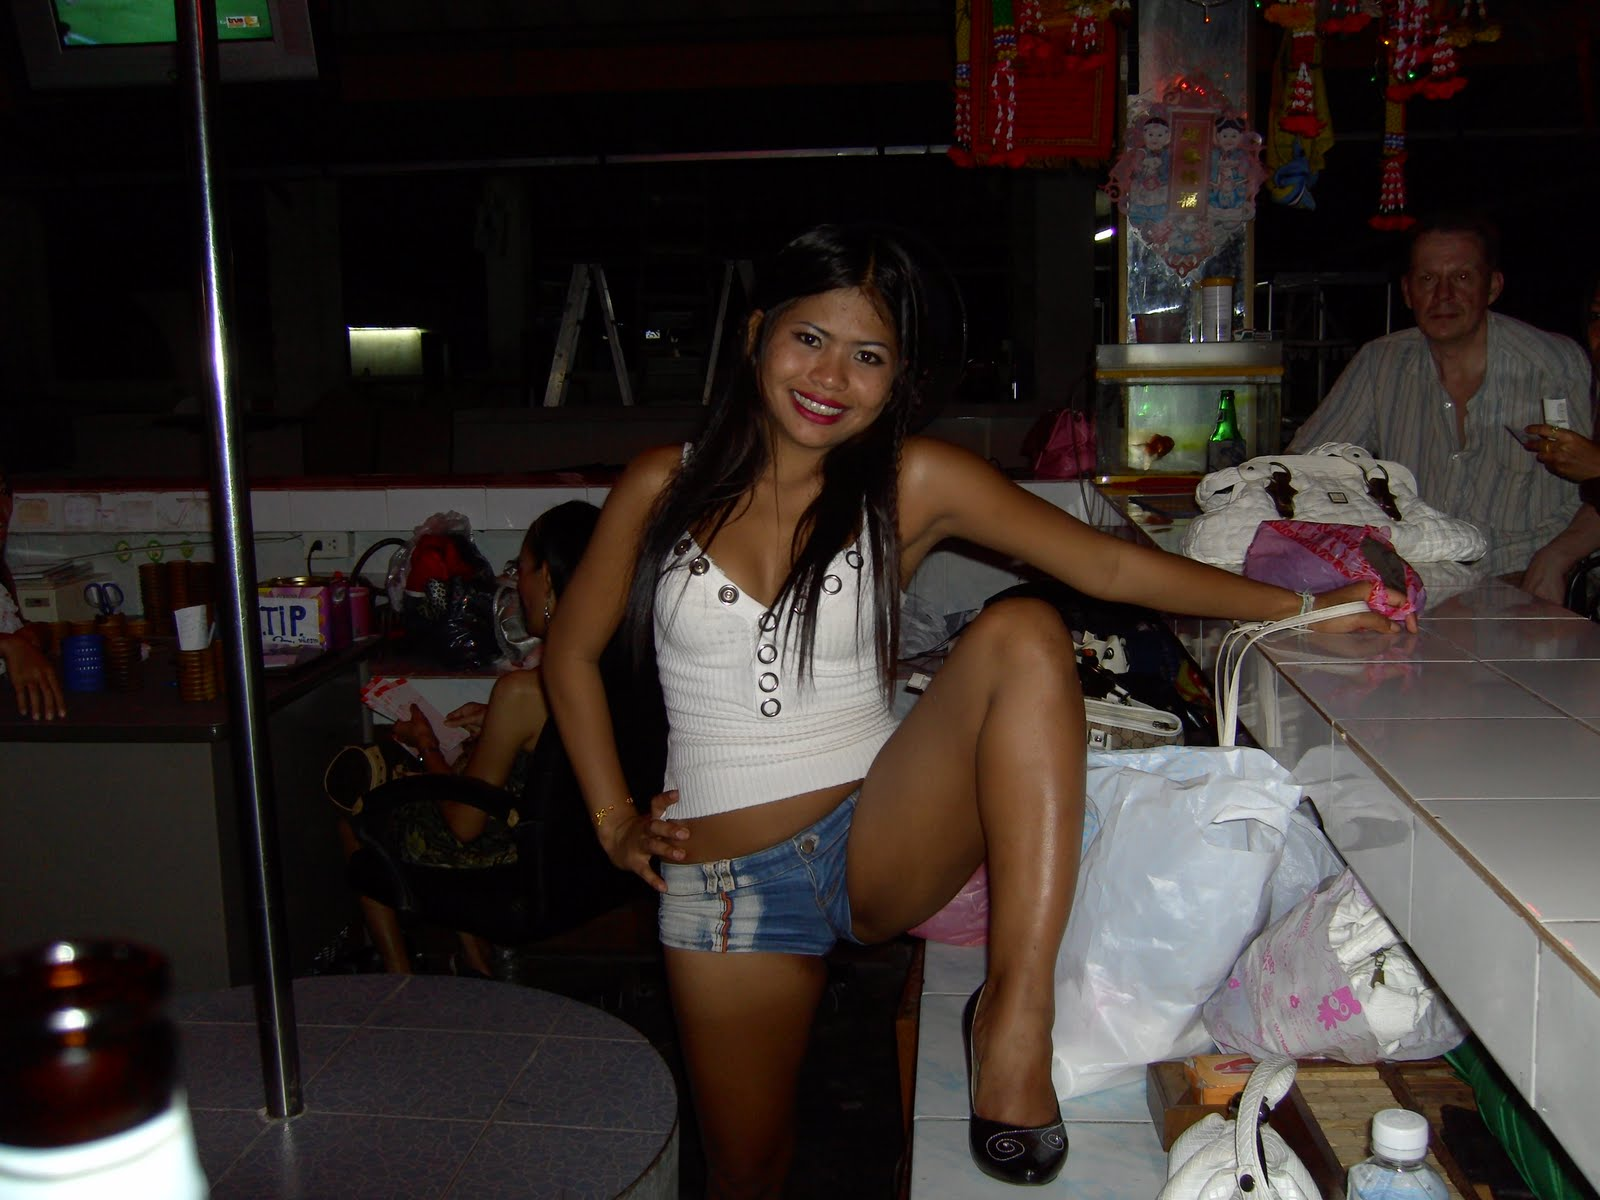 prostituutio sivut thailand cheap escort